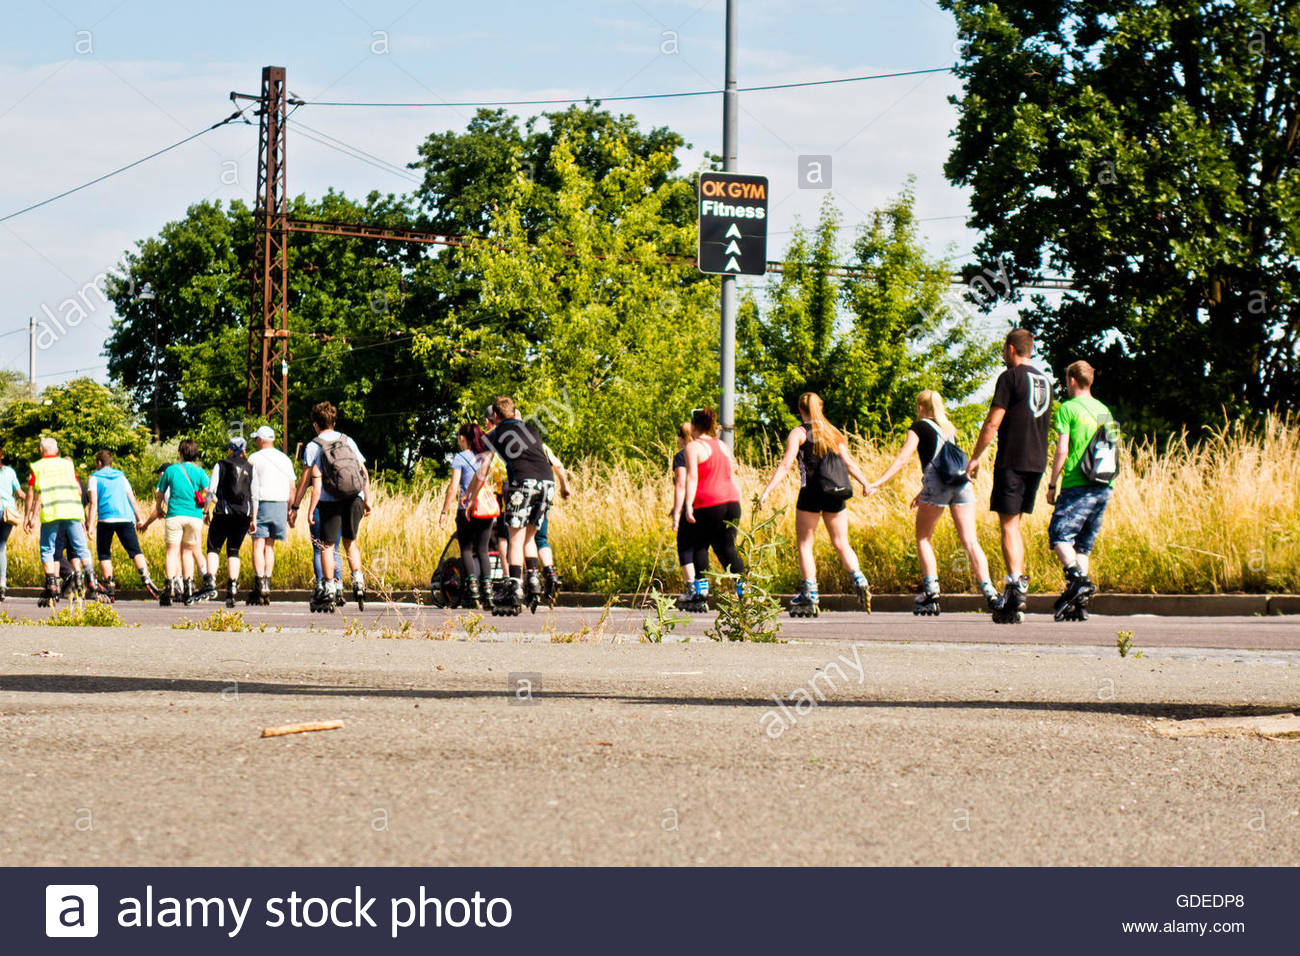 group of people skating - Stock Image